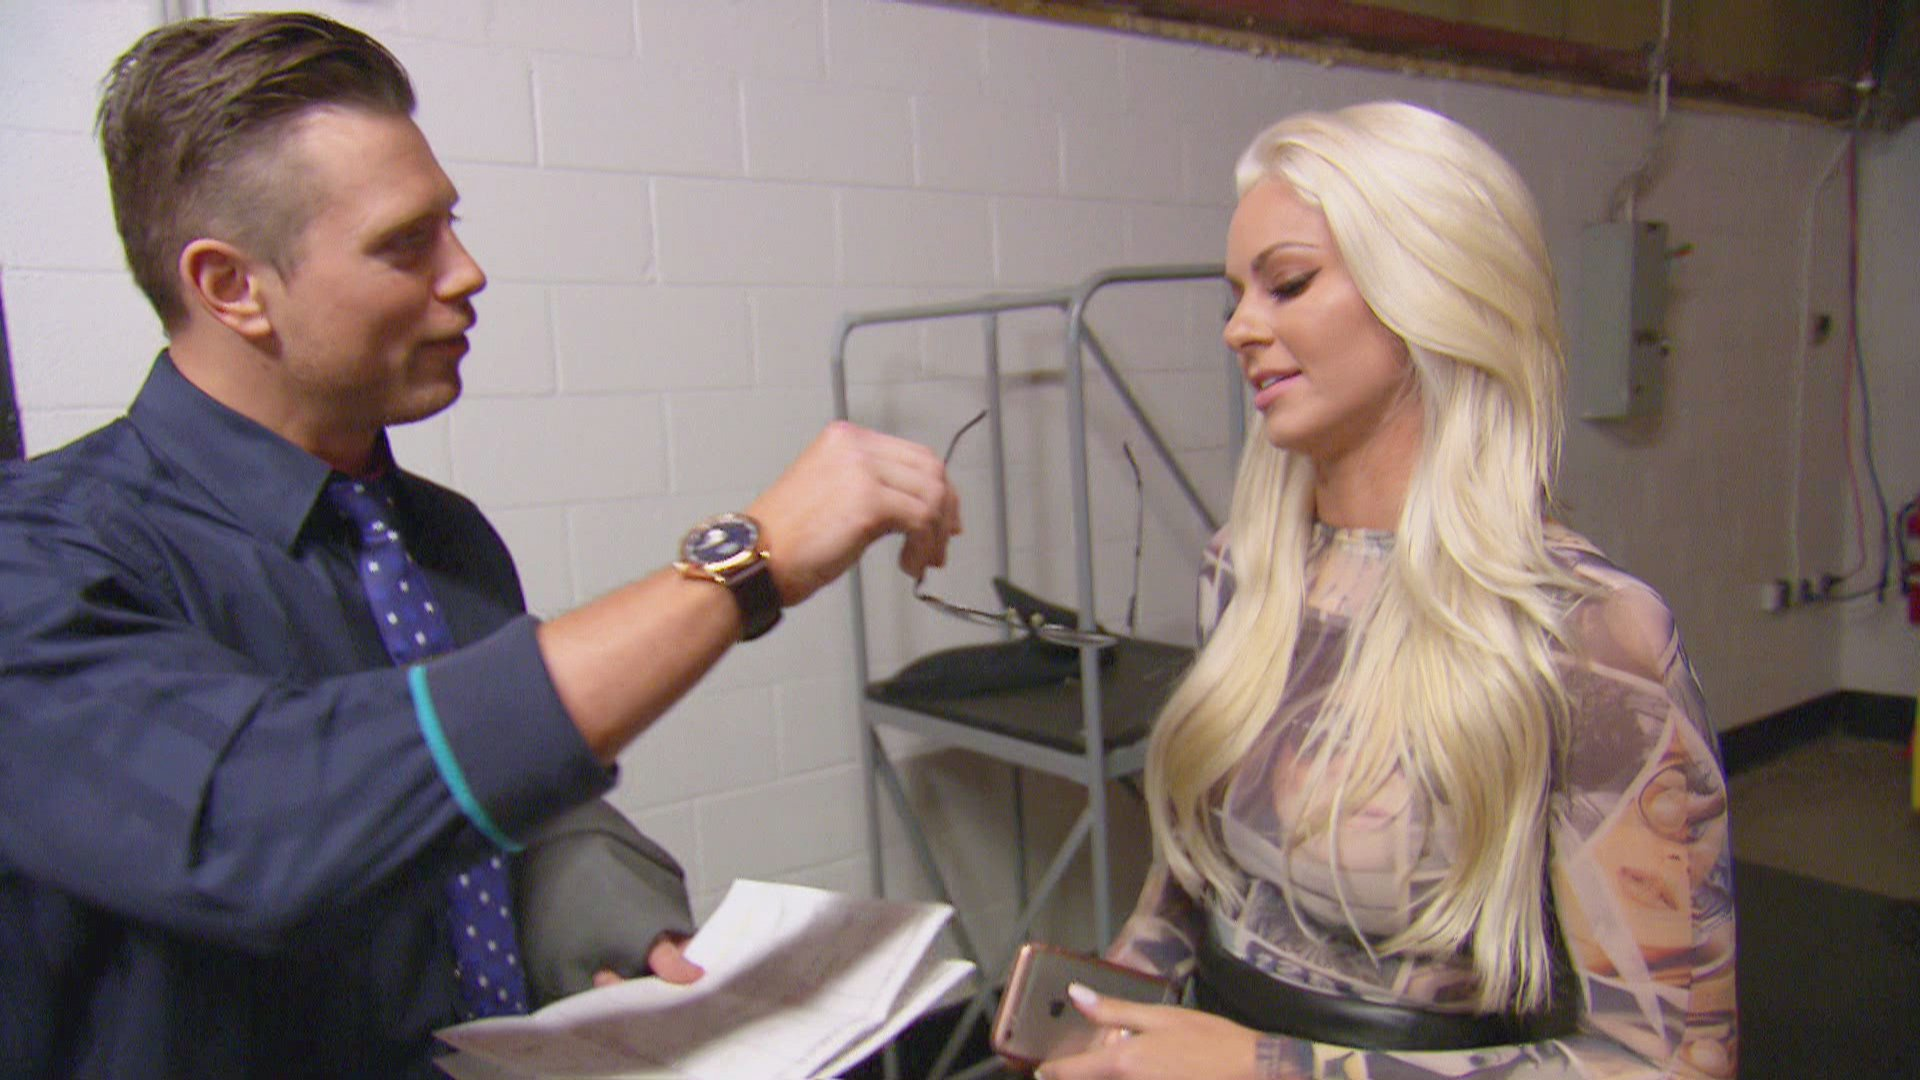 Did you know Maryse cannot see? Maryse apparently cannot see, yet she refuses to wear glasses or get Lasik eye surgery.